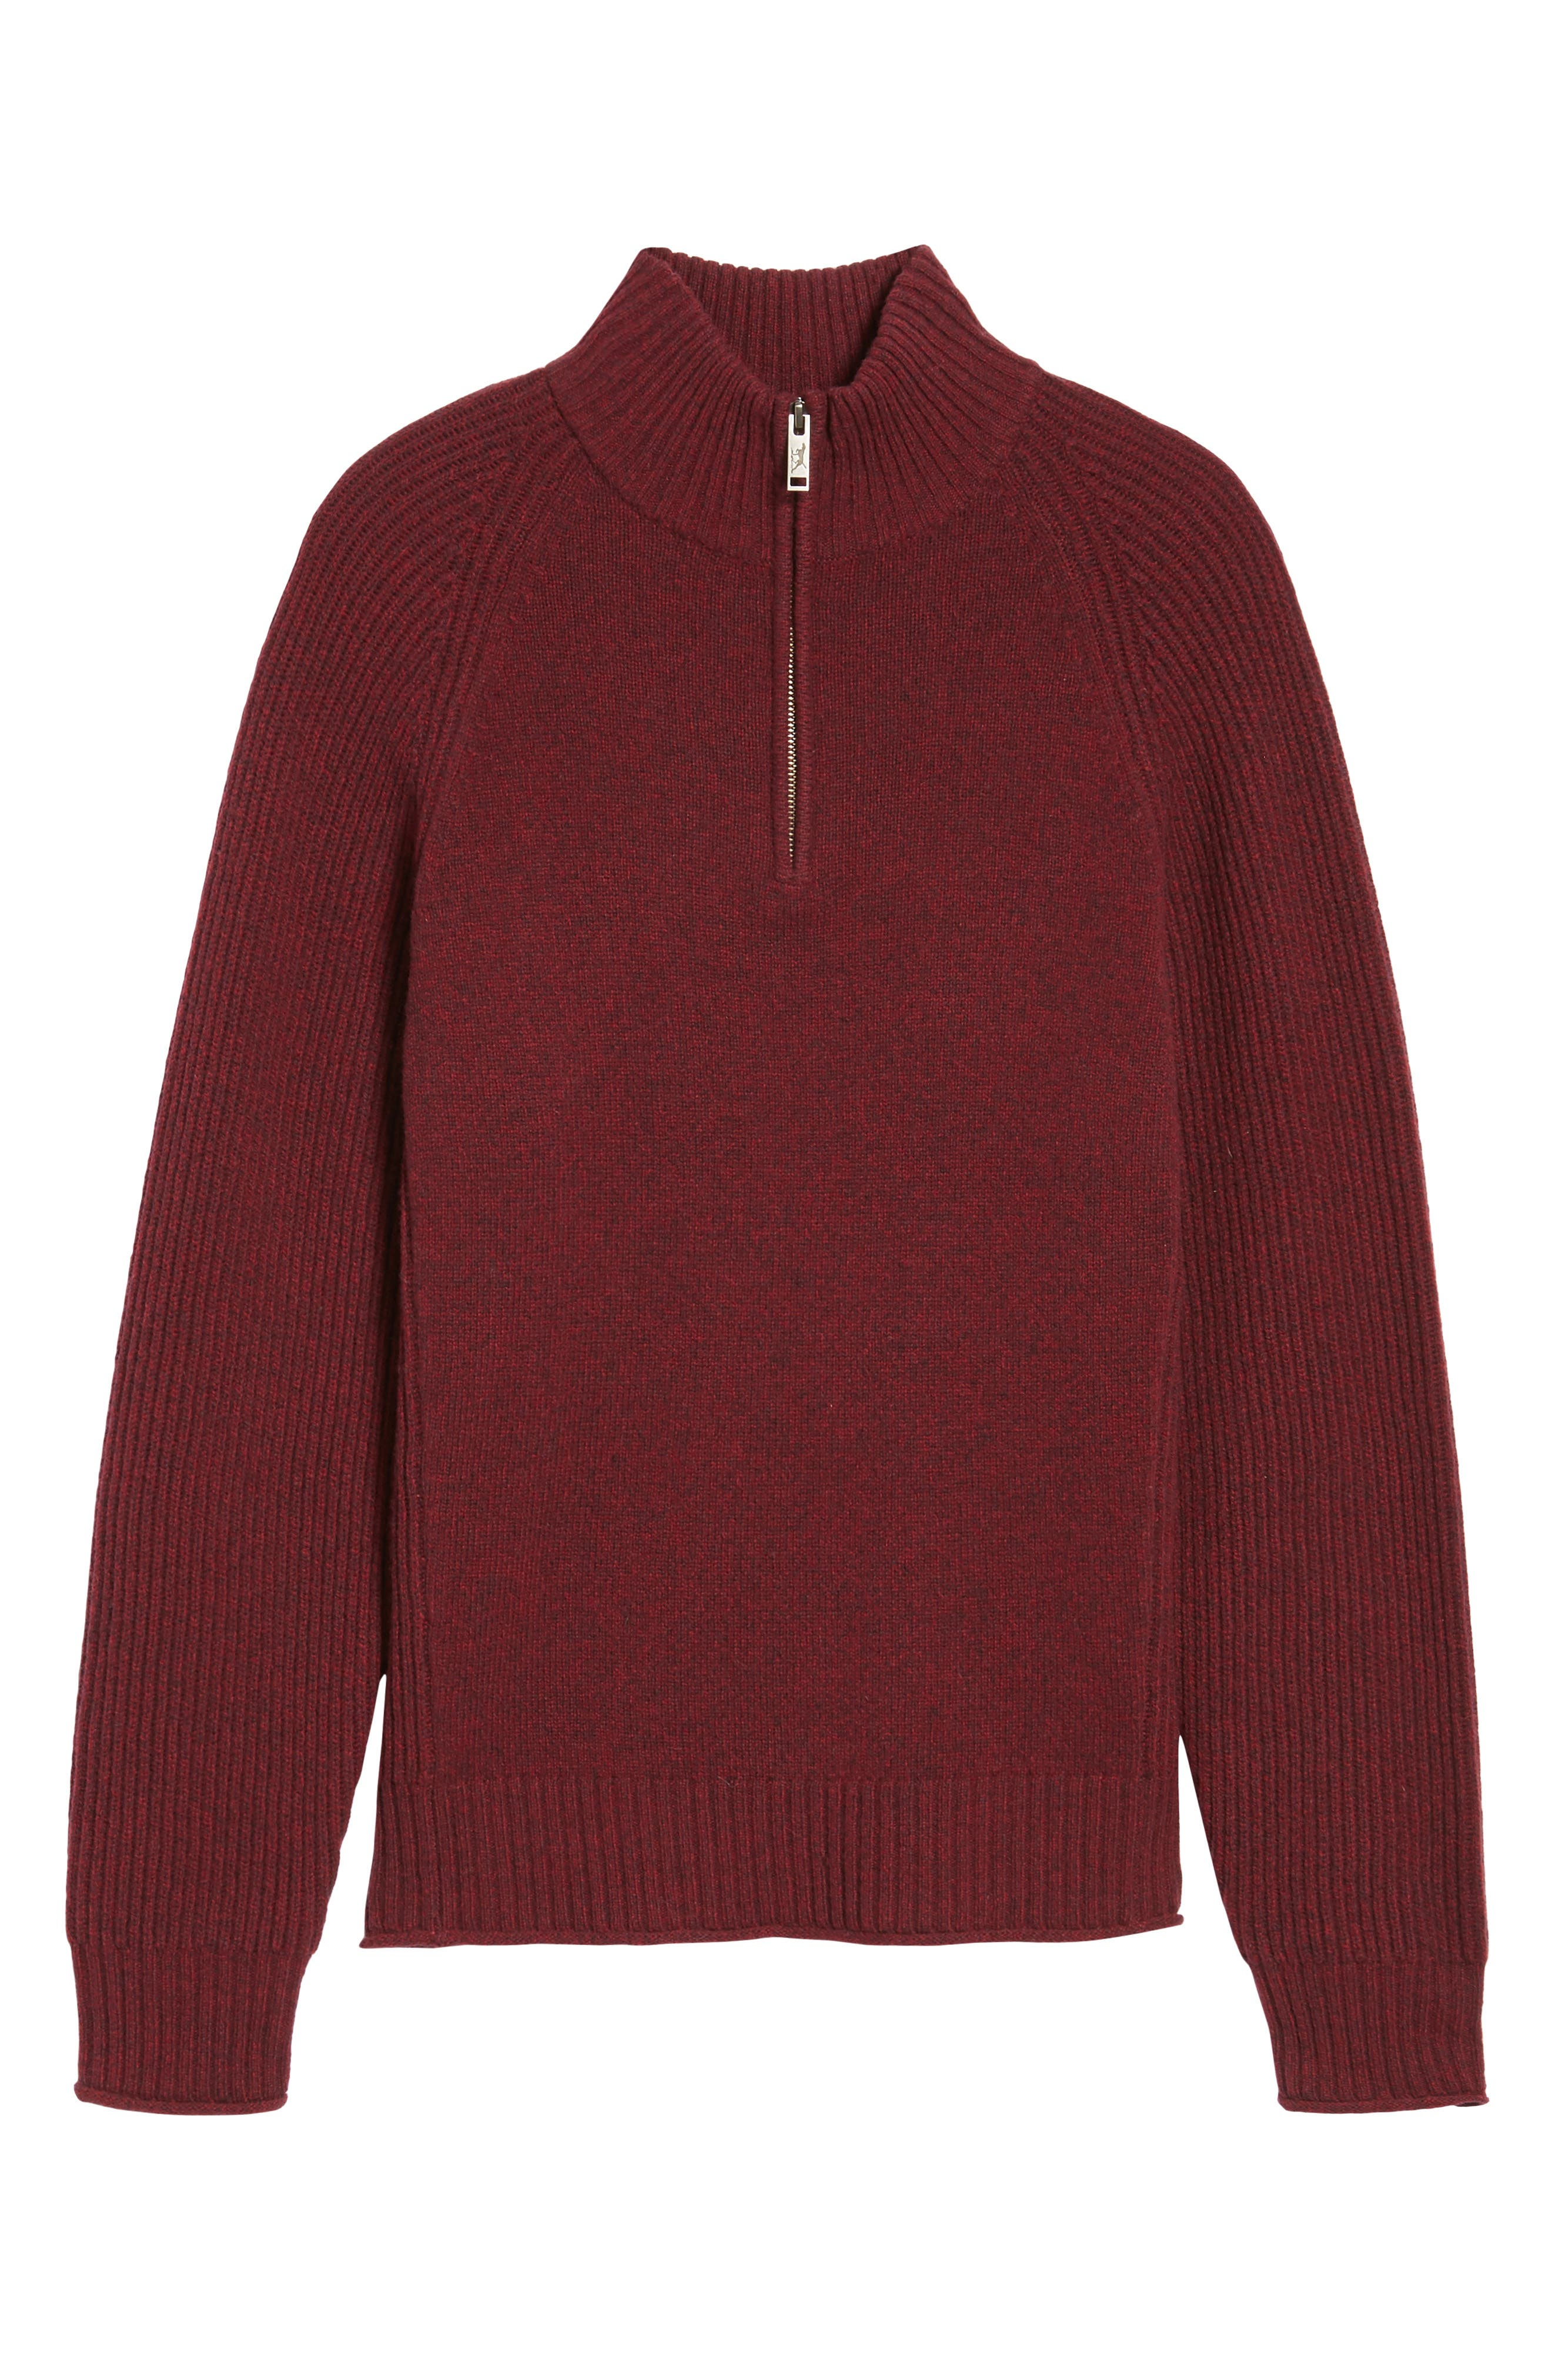 Stredwick Lambswool Sweater,                             Alternate thumbnail 27, color,